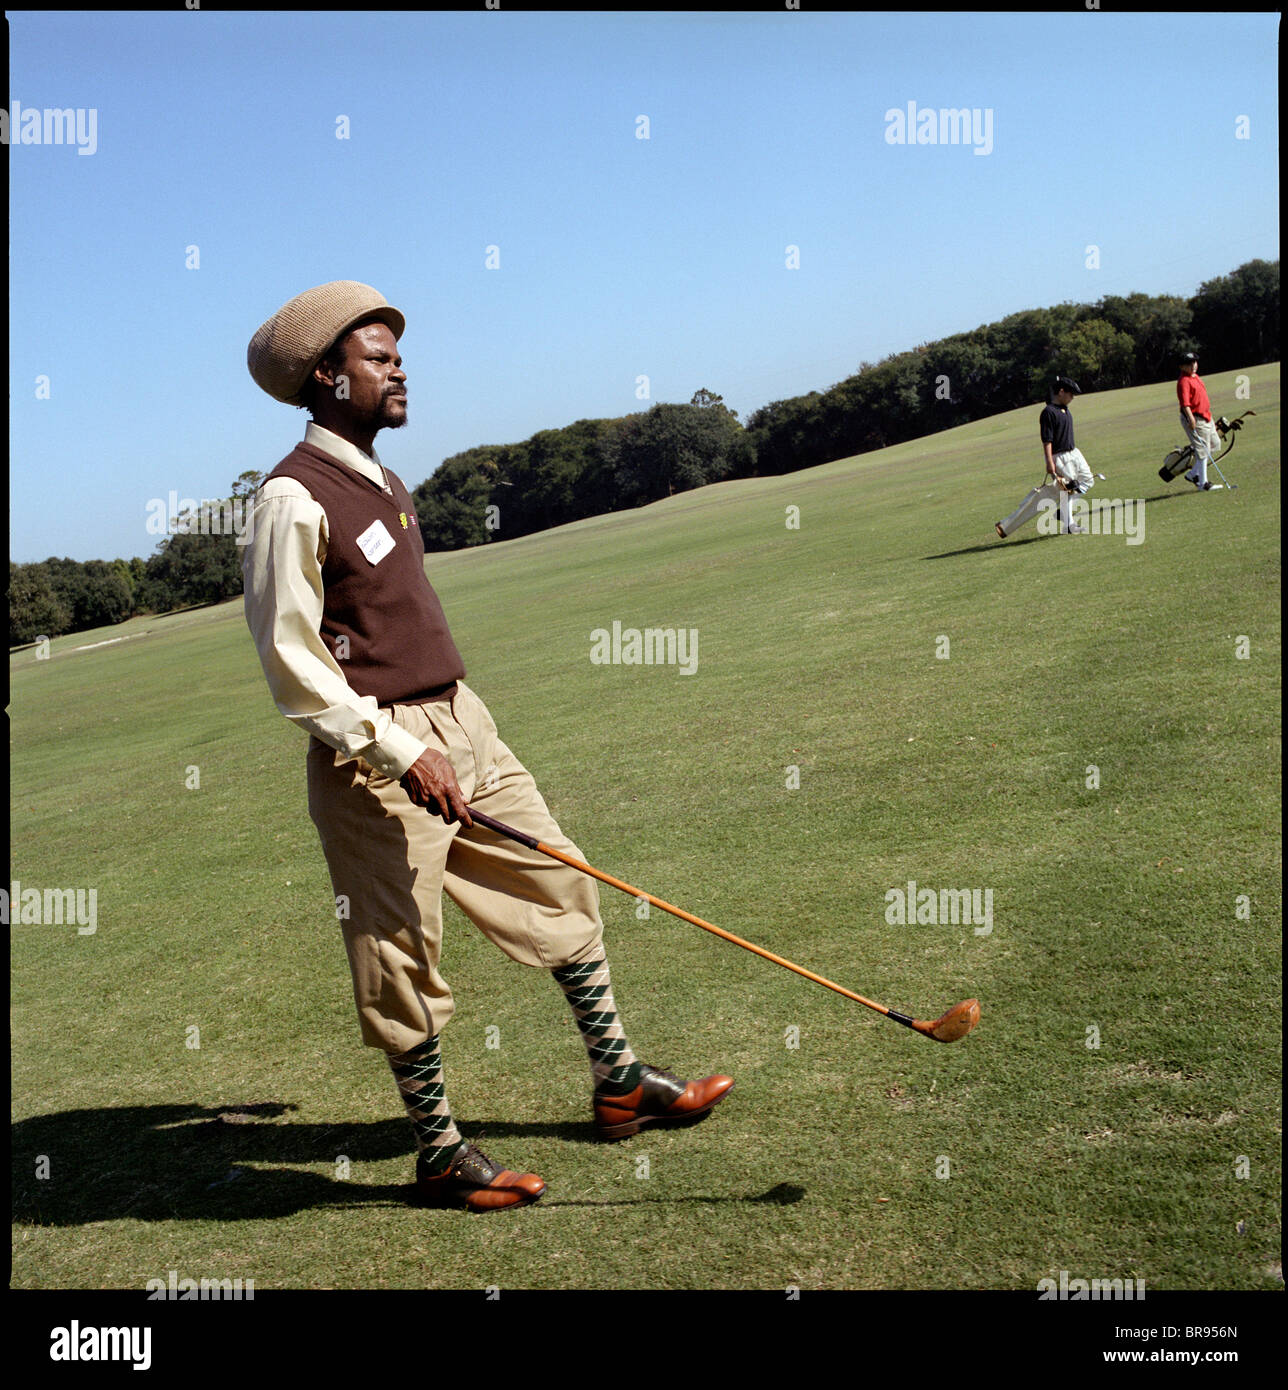 Playing Retro Golf with Hickory Clubs - Stock Image